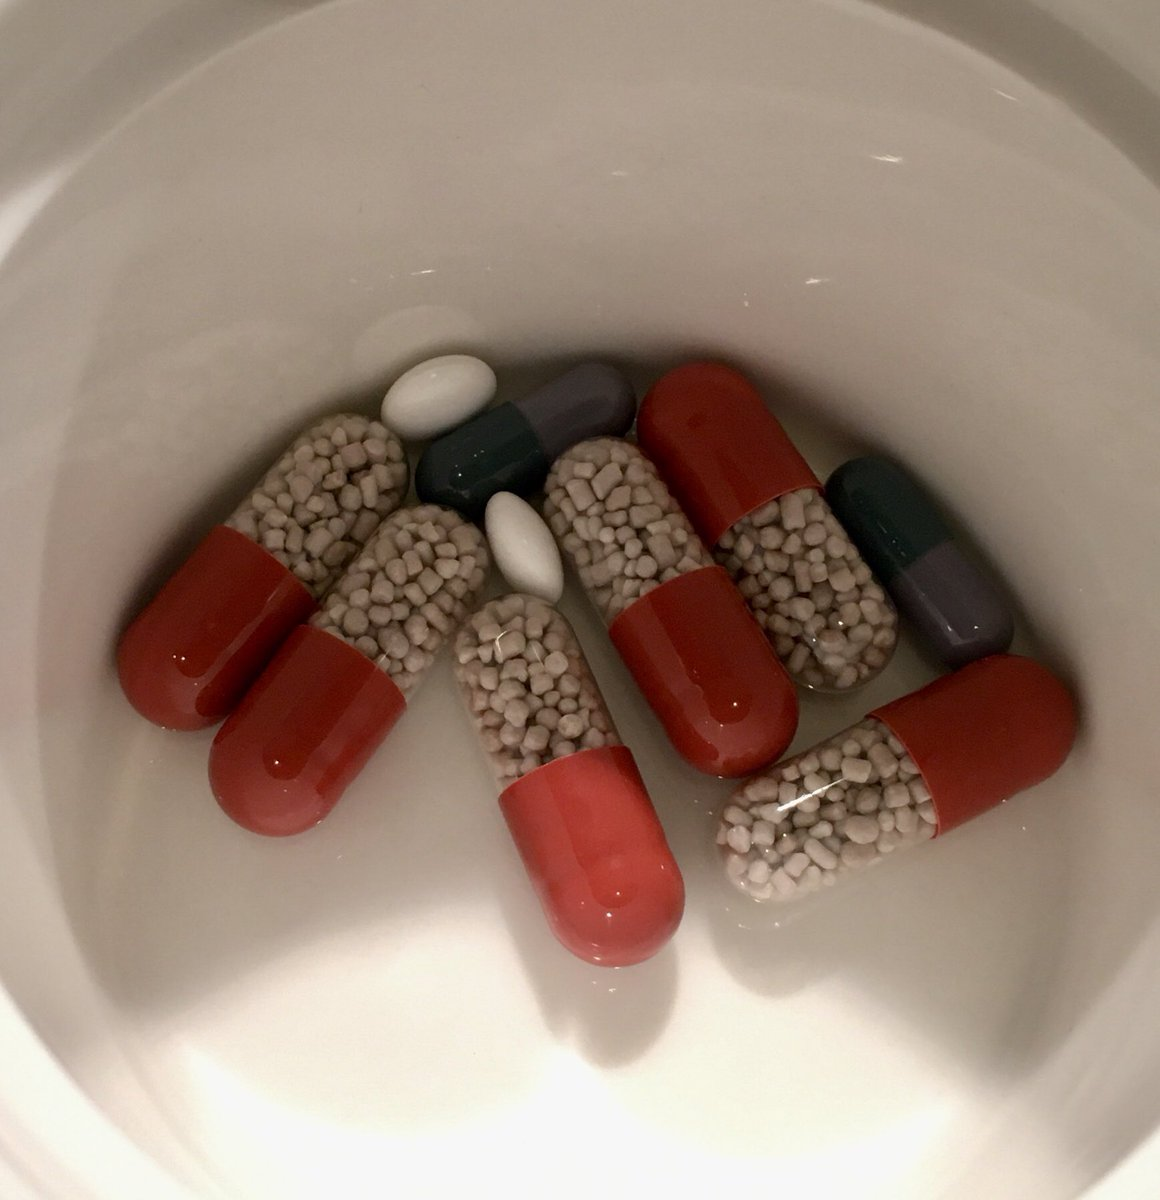 Having a bit of a low day...don't need y'all to comment...just had a moment before supper. This is every meal, everything I eat gets chased with these. 1600 tablets a month. Be sprinkles tomorrow. Be well ❤️ #purplehouse #irishcancersociety #talktosomeone #PositiveVibes https://t.co/gxrqqVp1eL